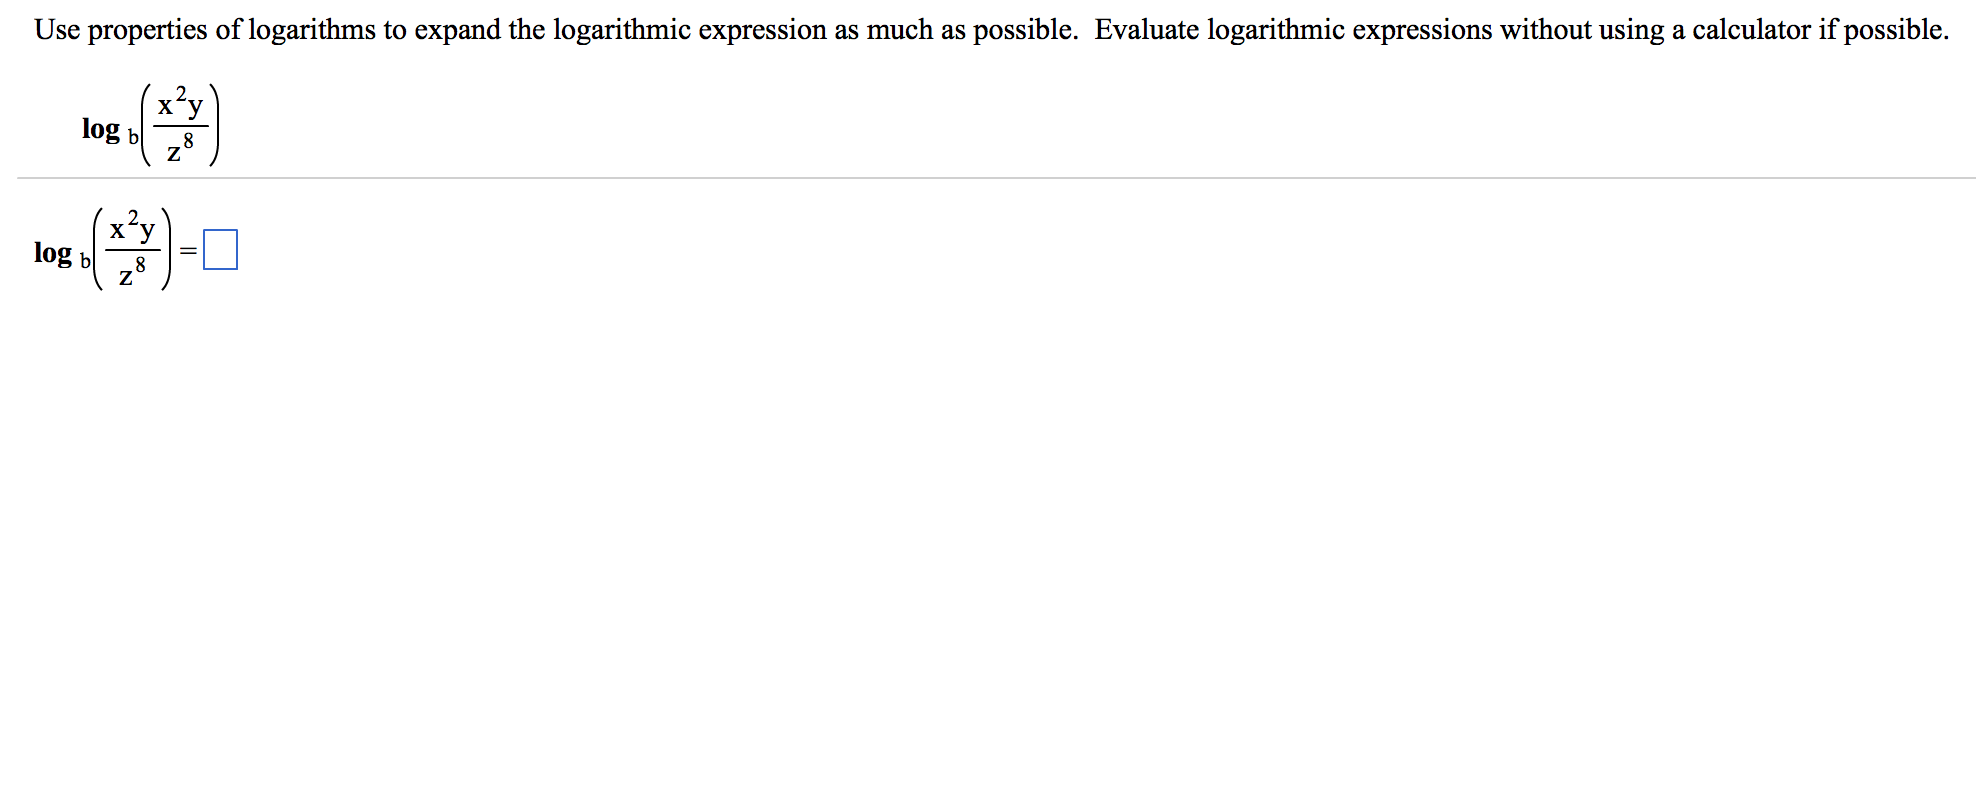 Precalculus archive june 29 2015 chegg image for use properties of logarithms to expand the logarithmic expression as much as possible falaconquin